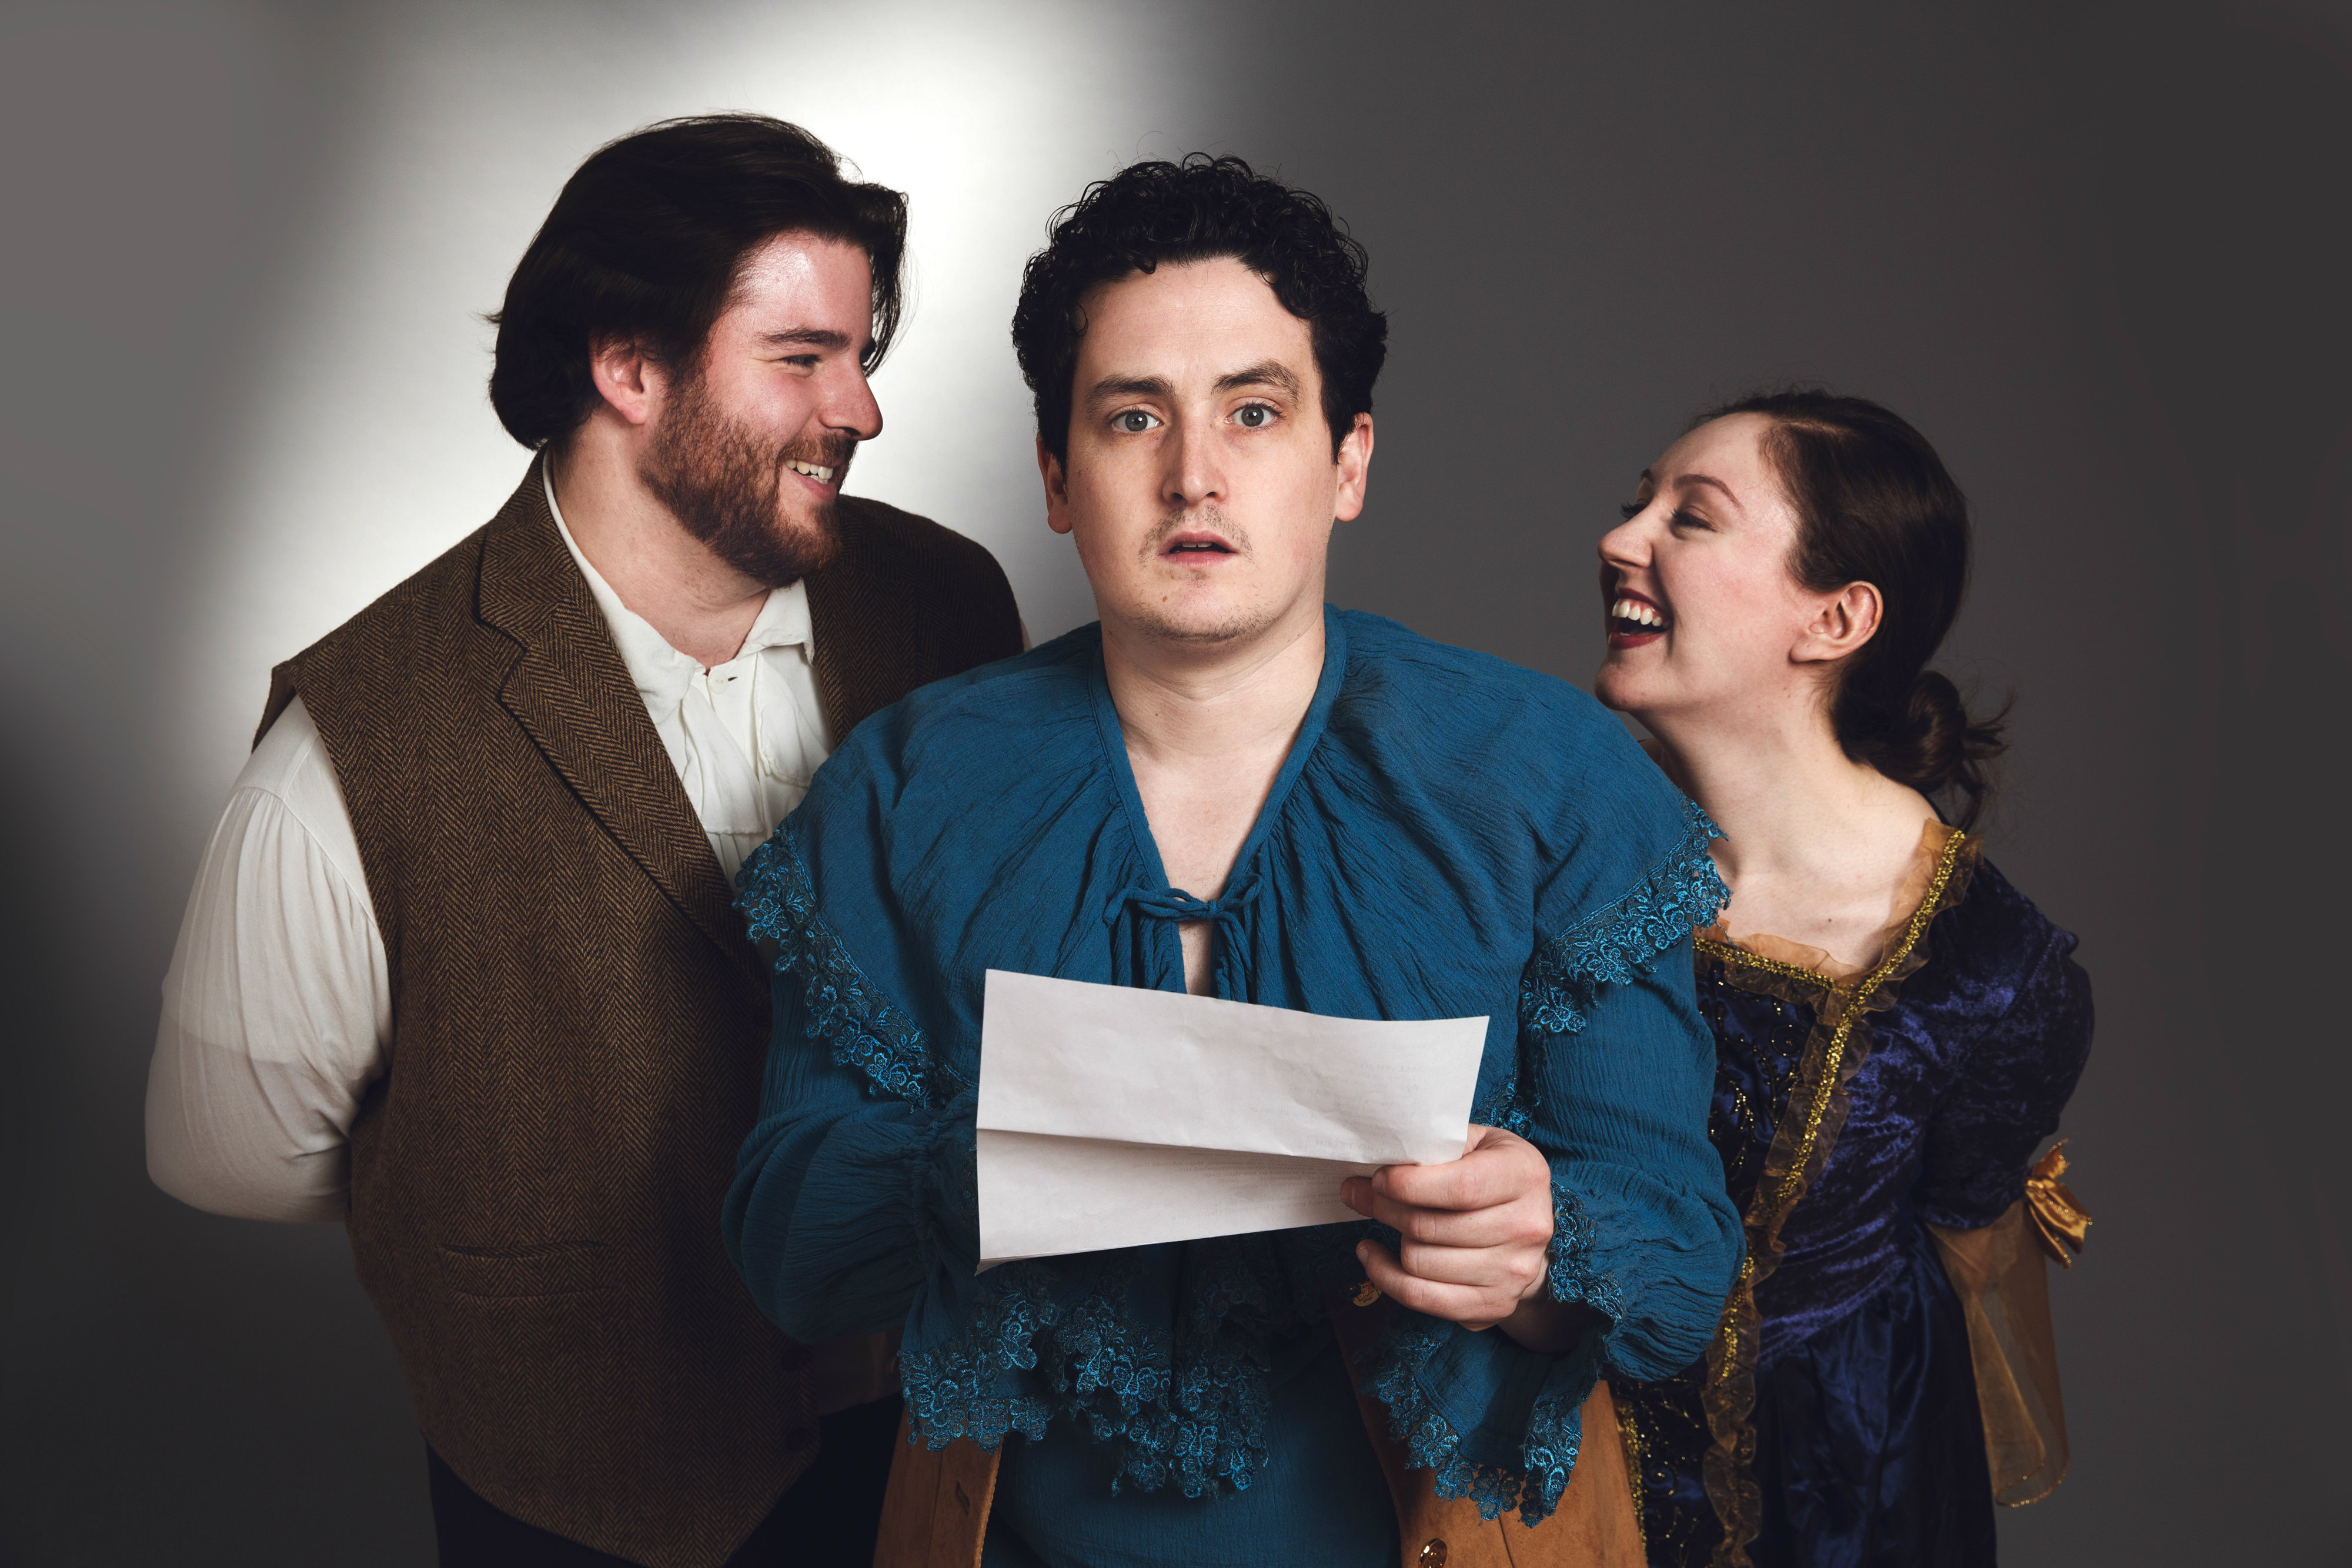 5. Sir Toby, Malvolio, Maria_Letter